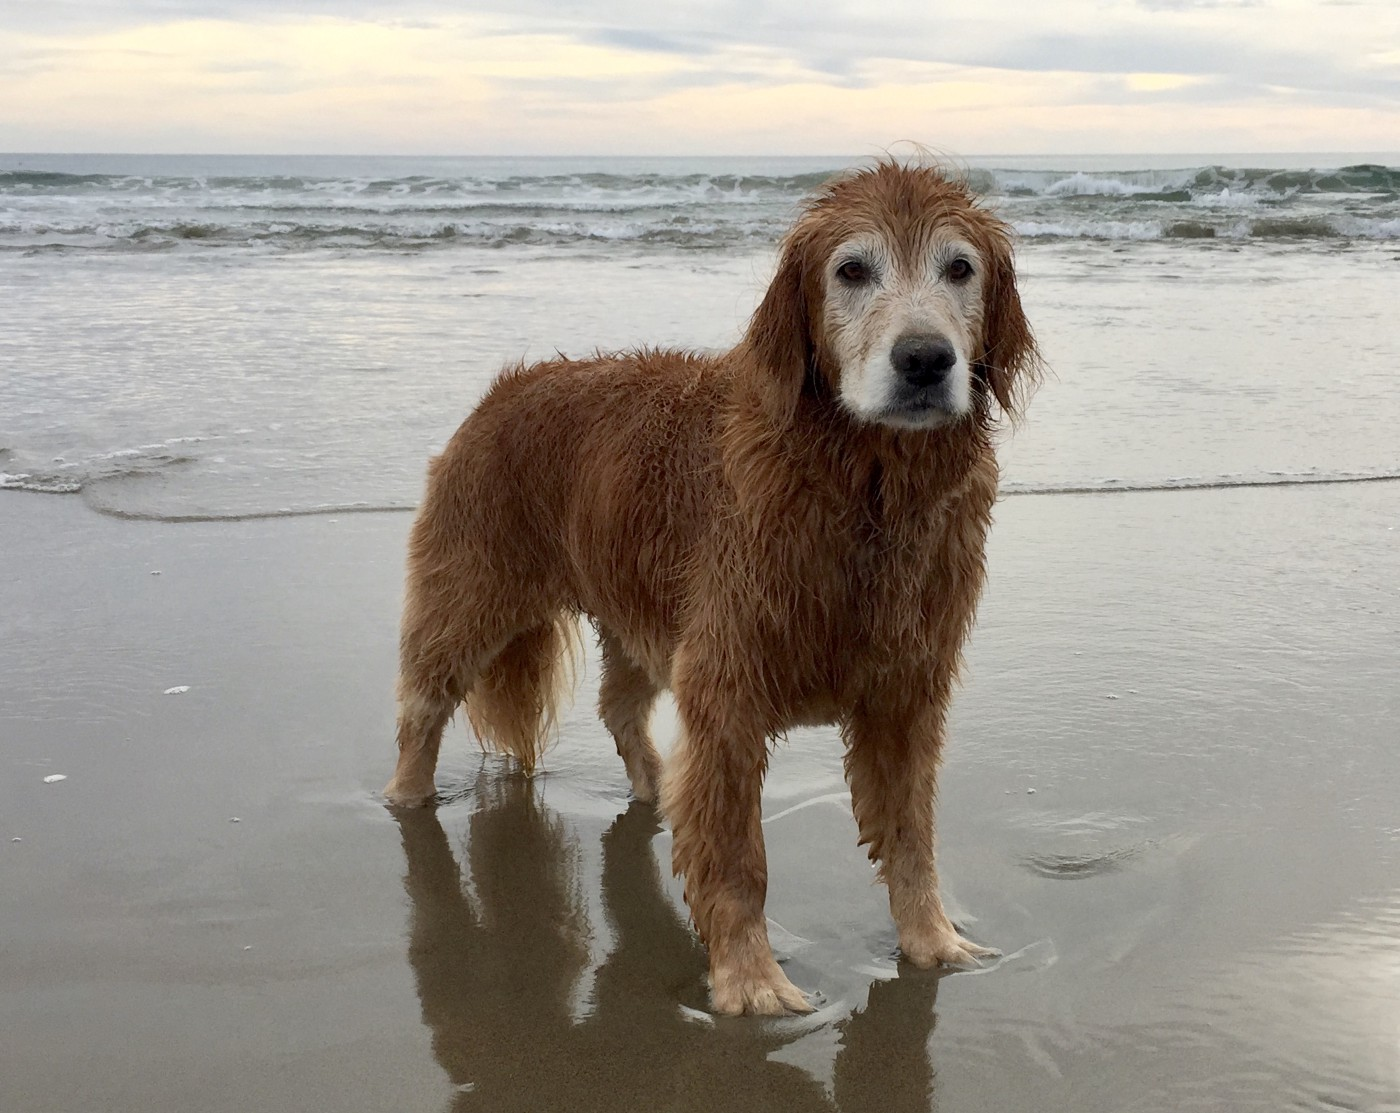 An old golden retriever on the beach in late afternoon.